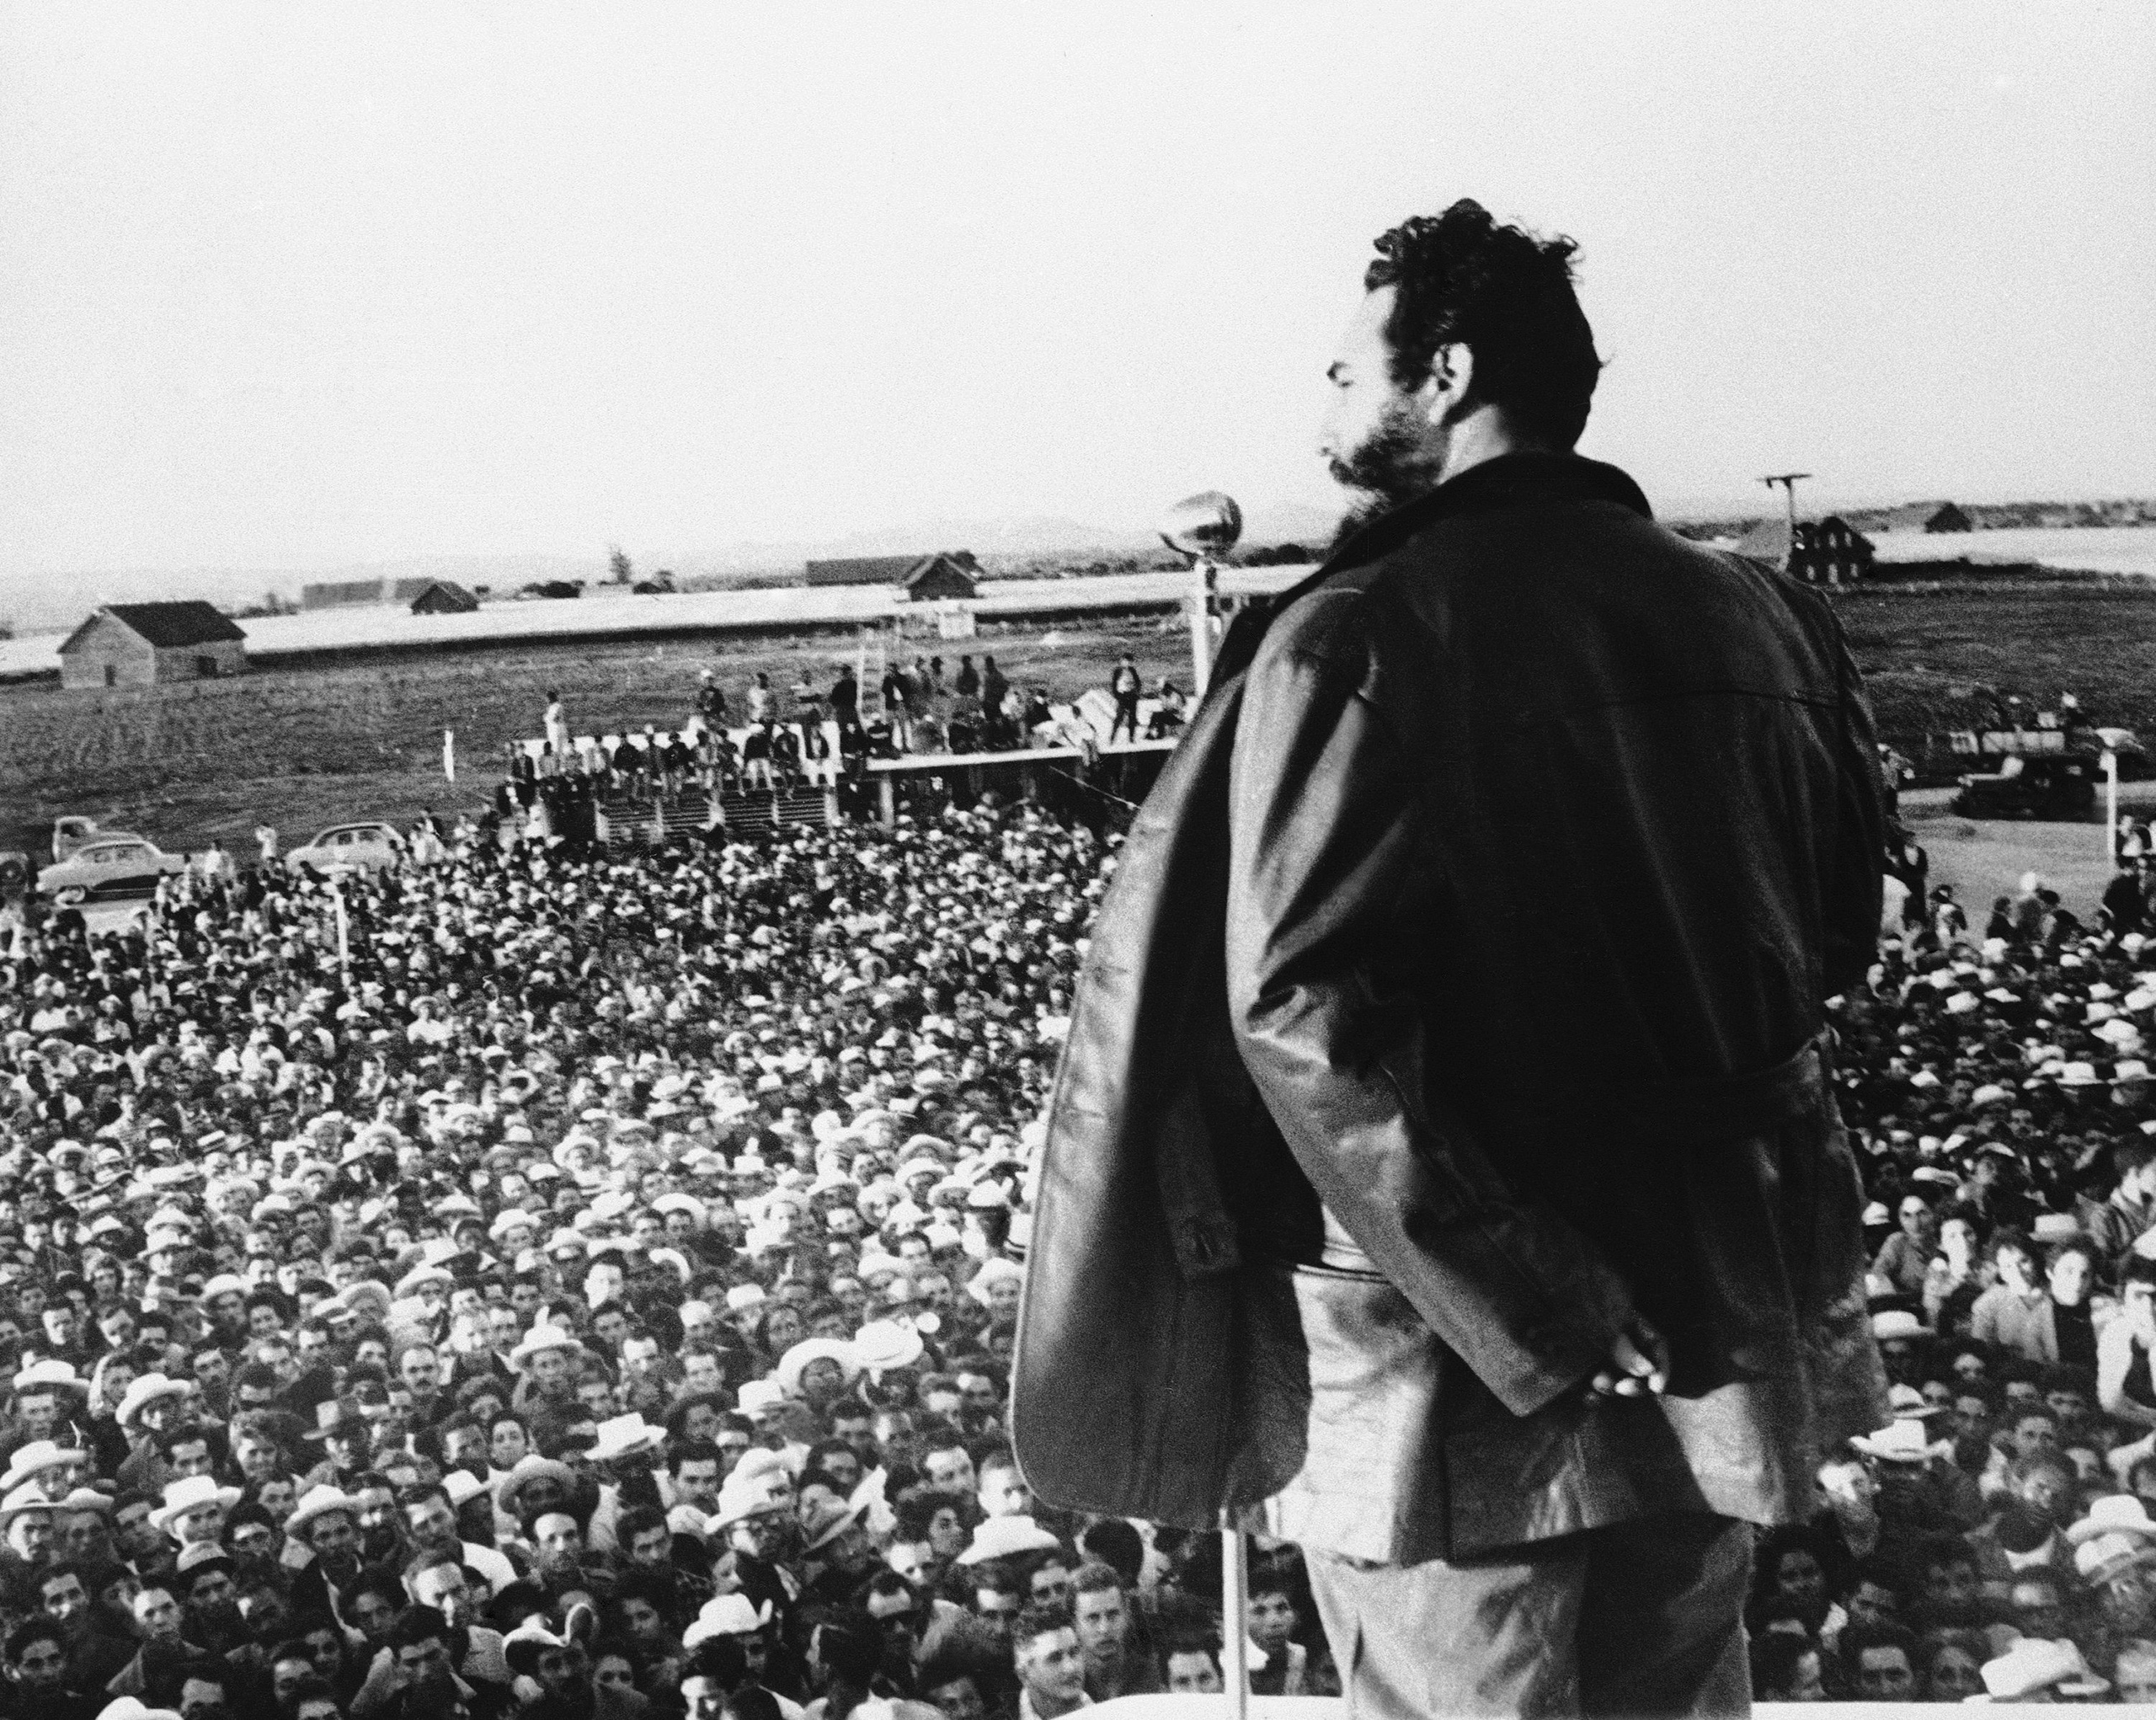 Fidel Castro speaks to tobacco workers for whom he founded a new workers' town in Pinar del Rio, Cuba, on April 9, 1960.